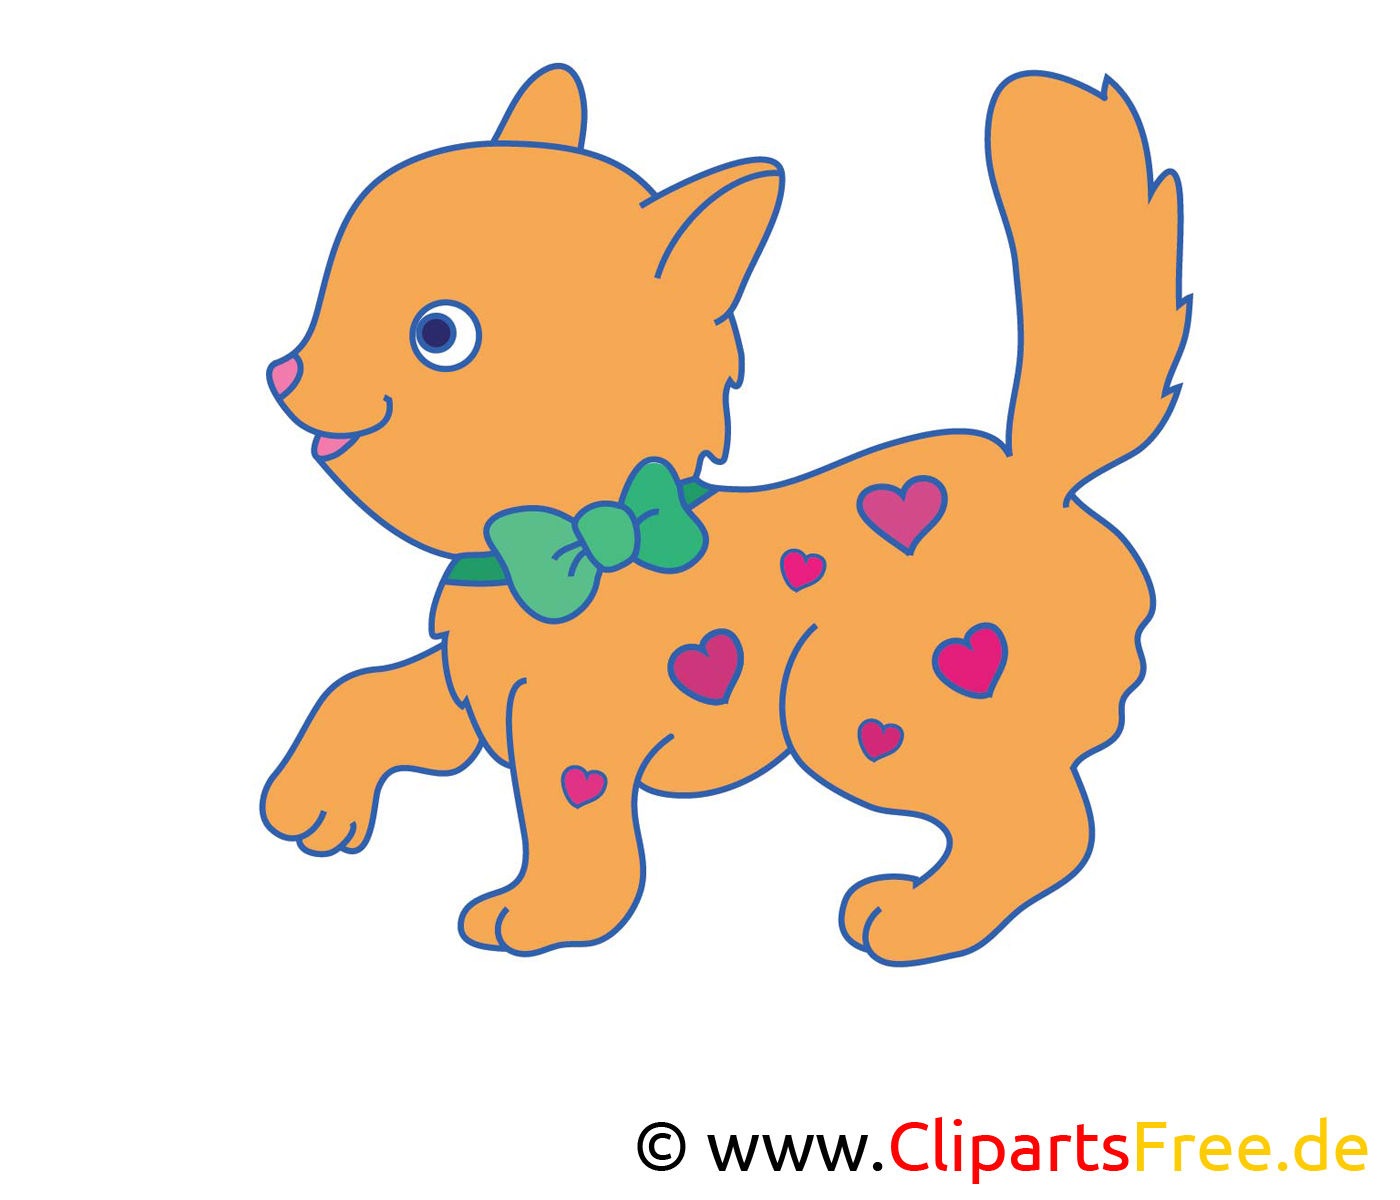 Cliparts gratuis chat – Ferme images